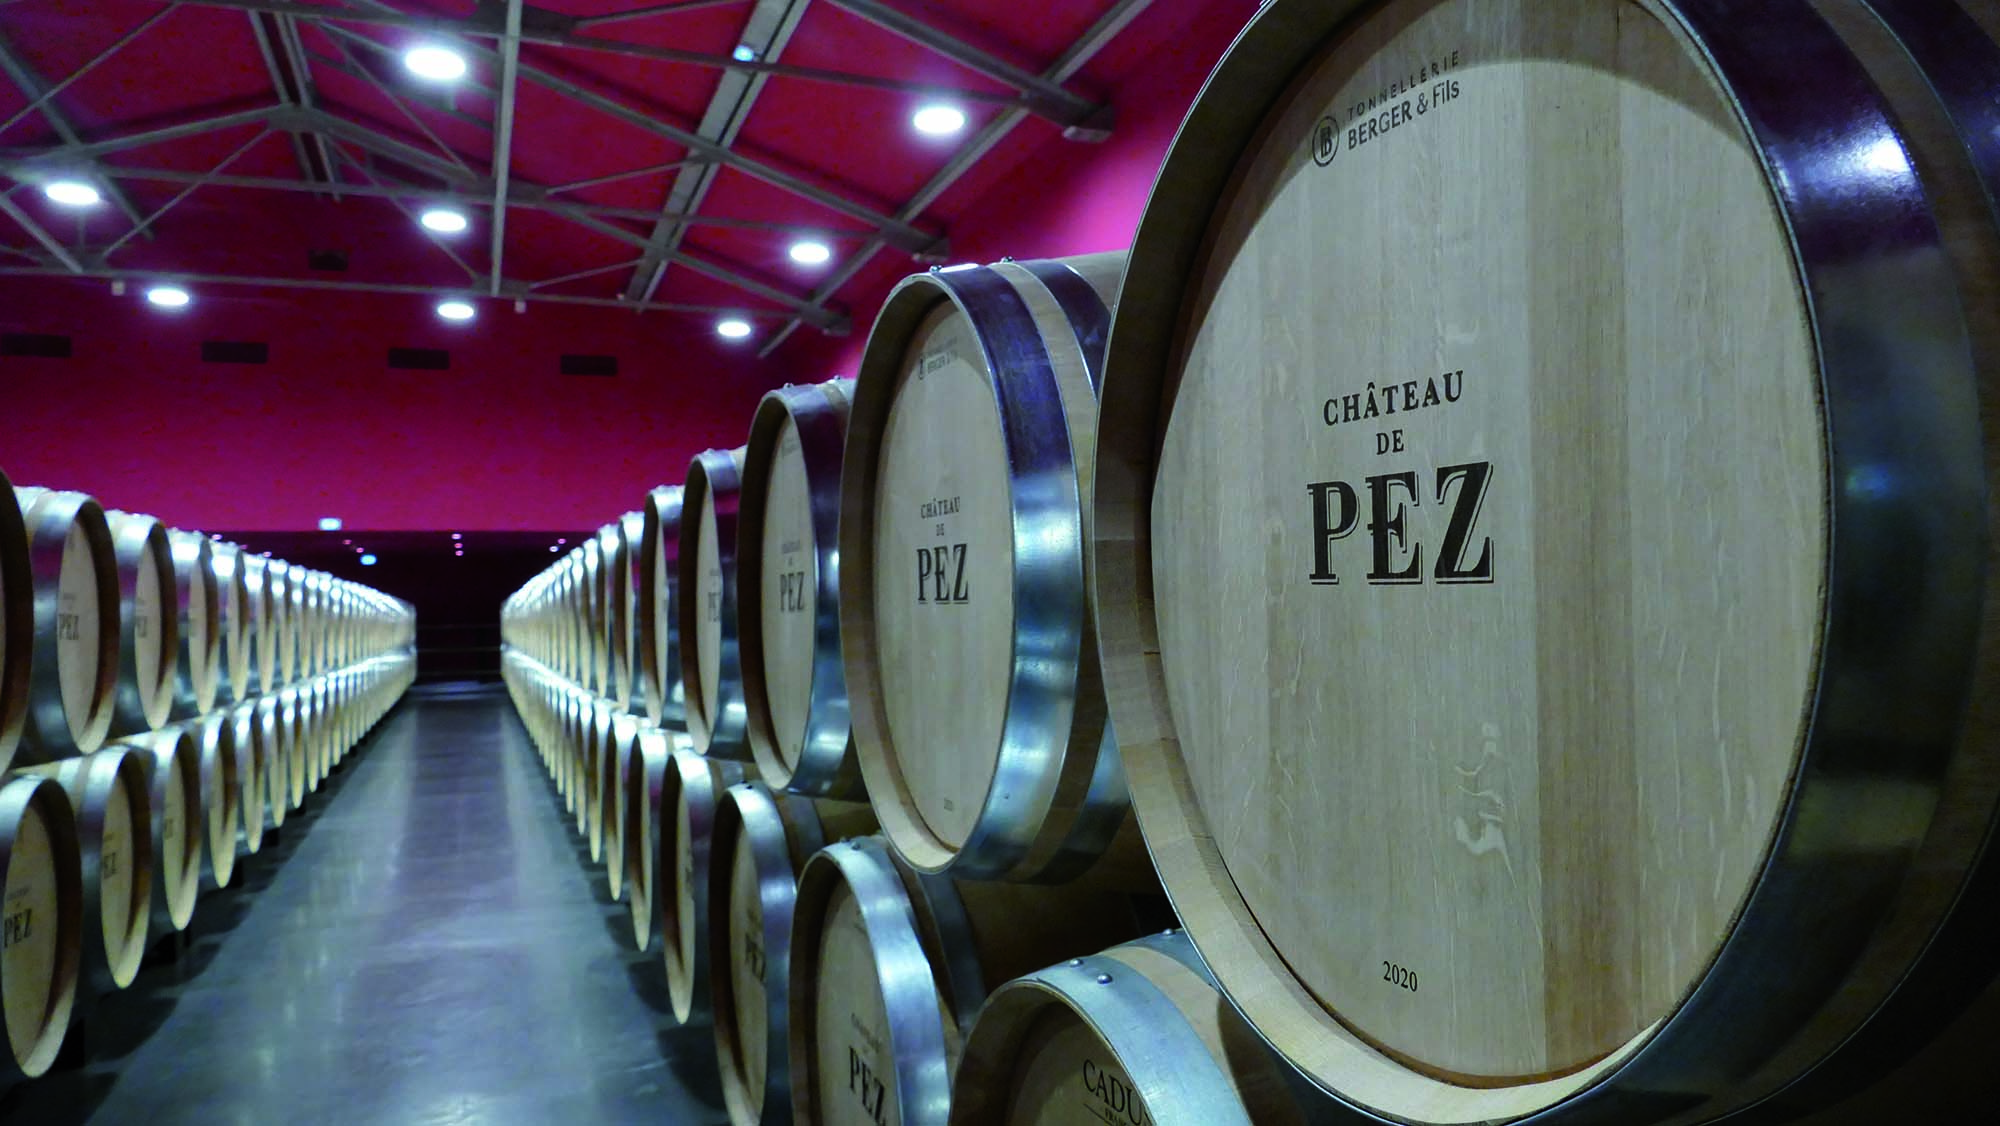 PEZ CHAI BARRIQUES_The area used for storing wine_Mapei solutions for wine production plants